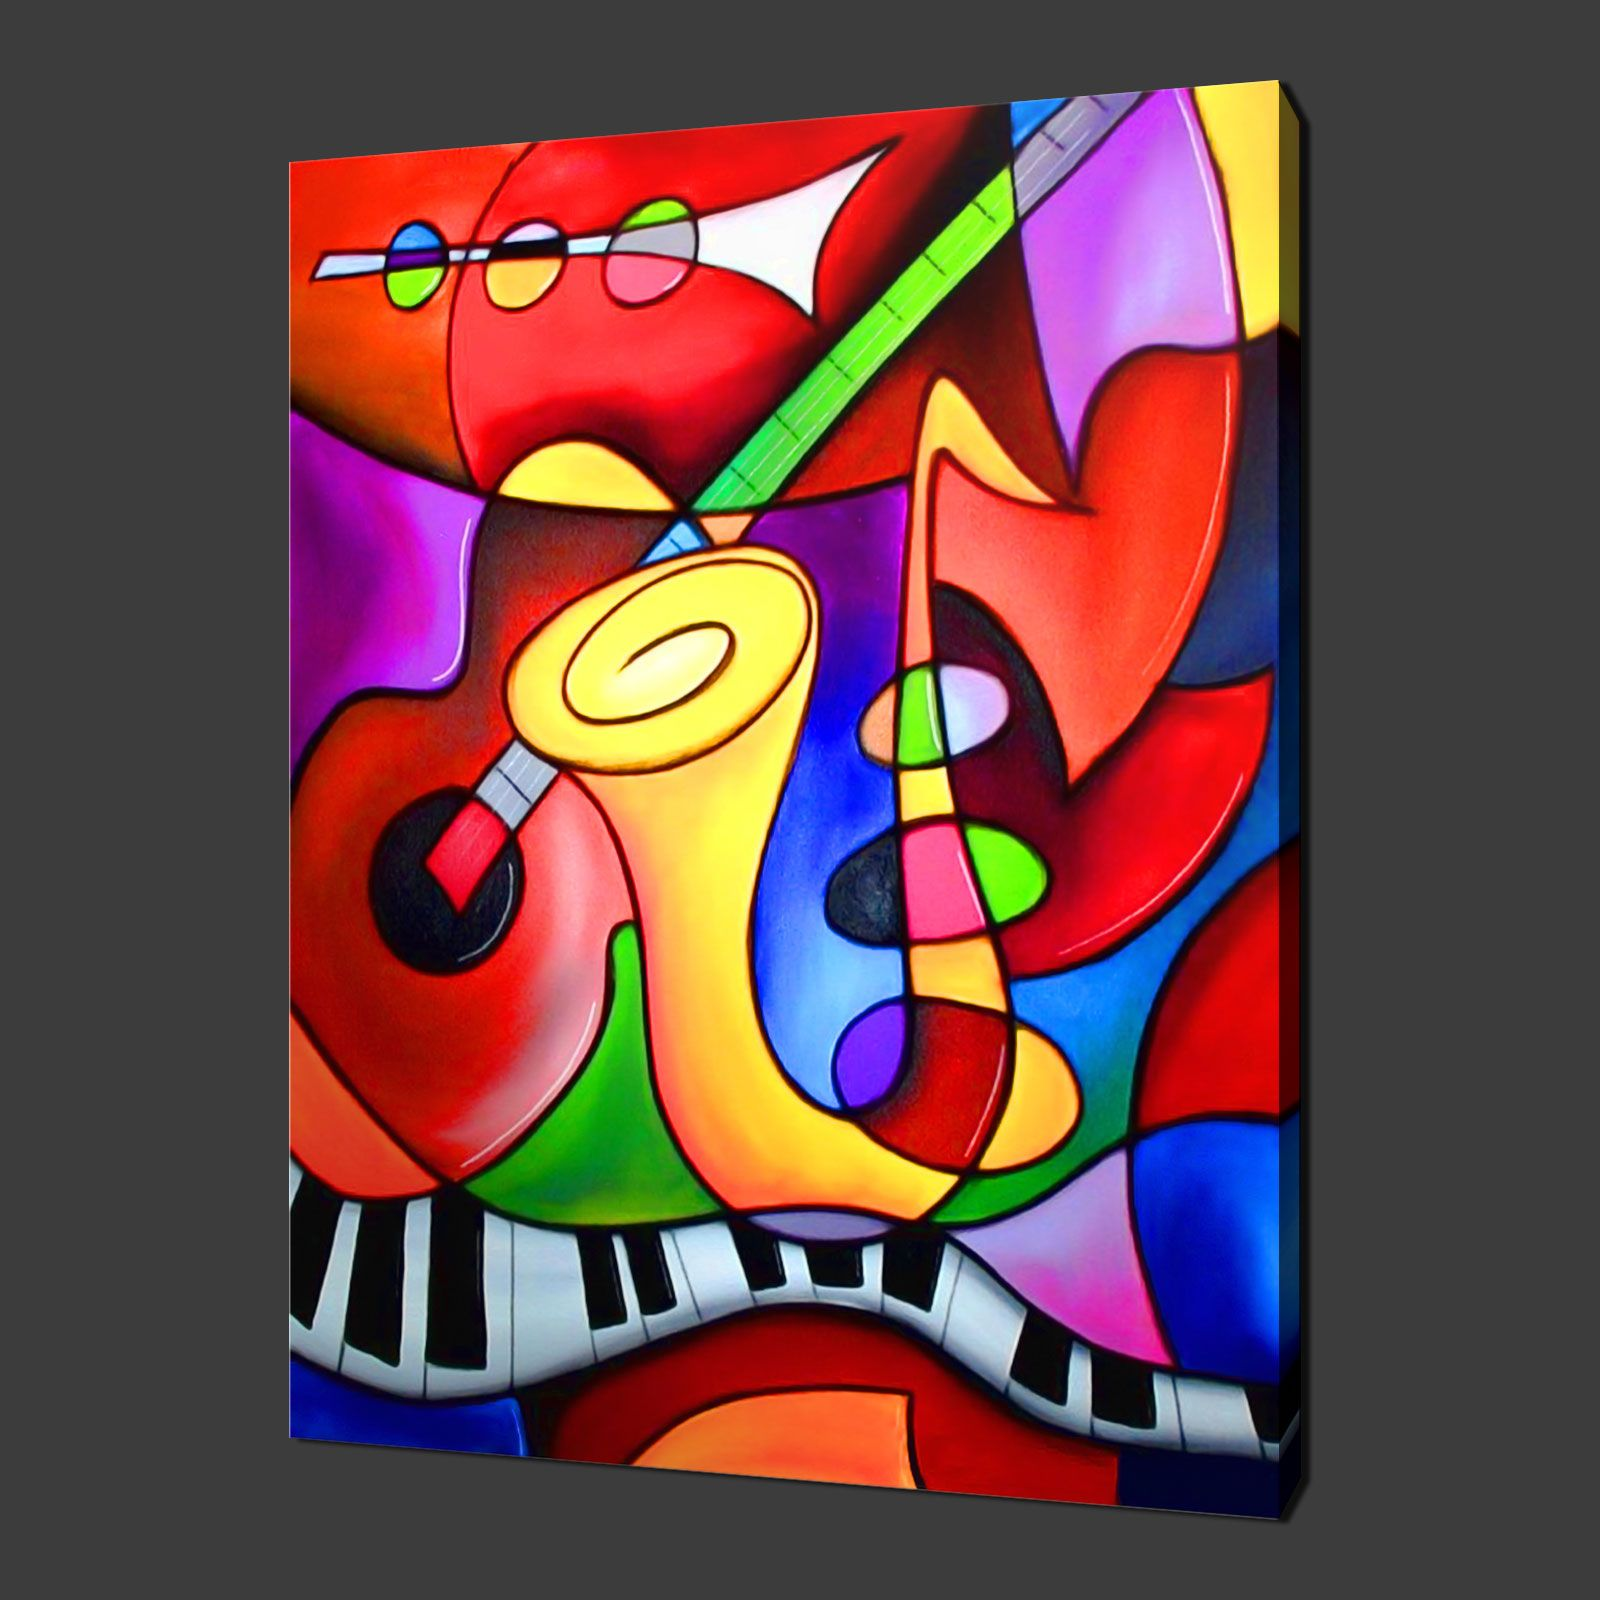 Canvas Design Ideas simple canvas painting ideas original painting on canvas 5 x 5 inches an original acrylic Abstract Design Painting Widescreen 2 Hd Wallpapers Creativity